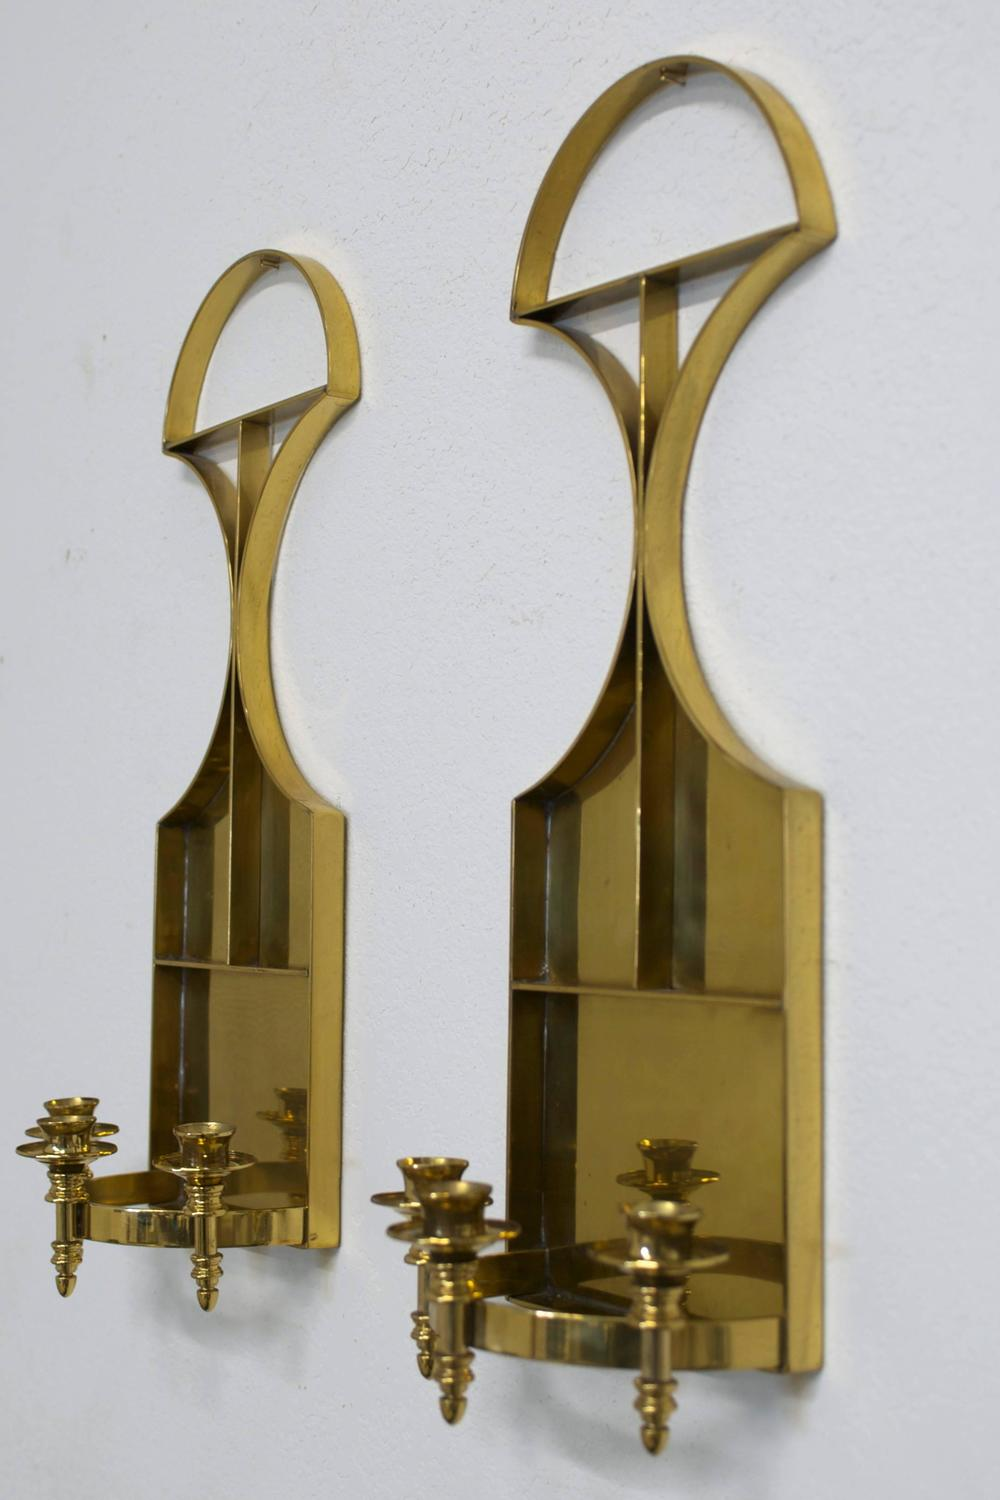 Pair of Solid Brass Mid-Century Candle Wall Sconces For Sale at 1stdibs